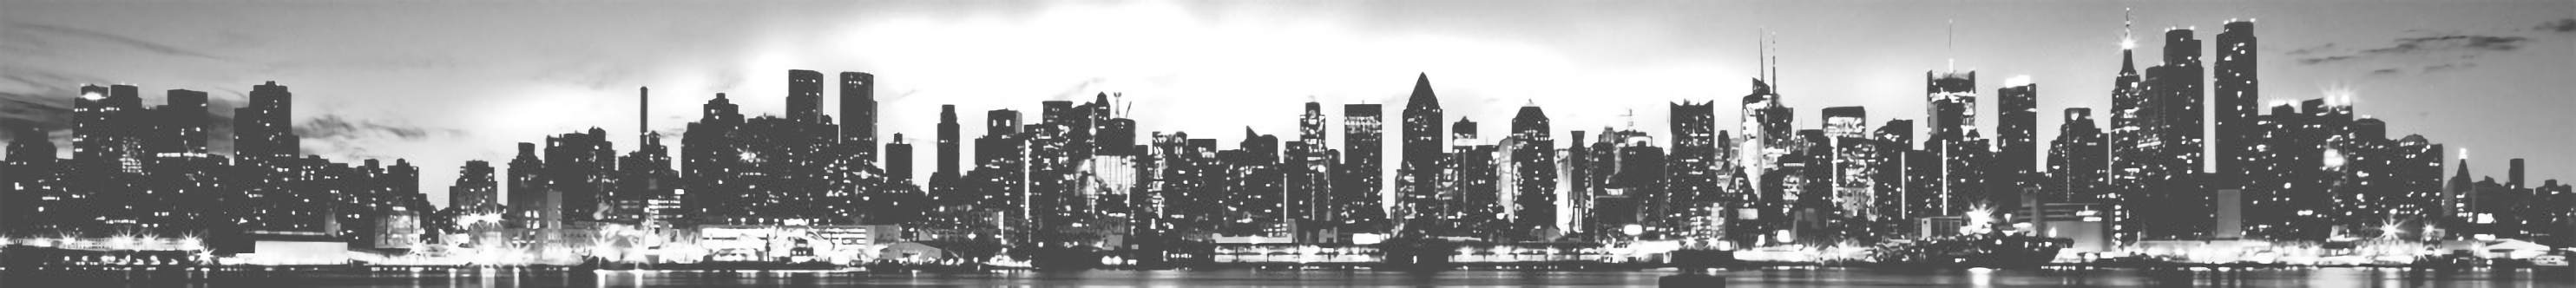 new_york_city_skyline_banner-3_waifu2x_photo_noise1_scale_tta_1